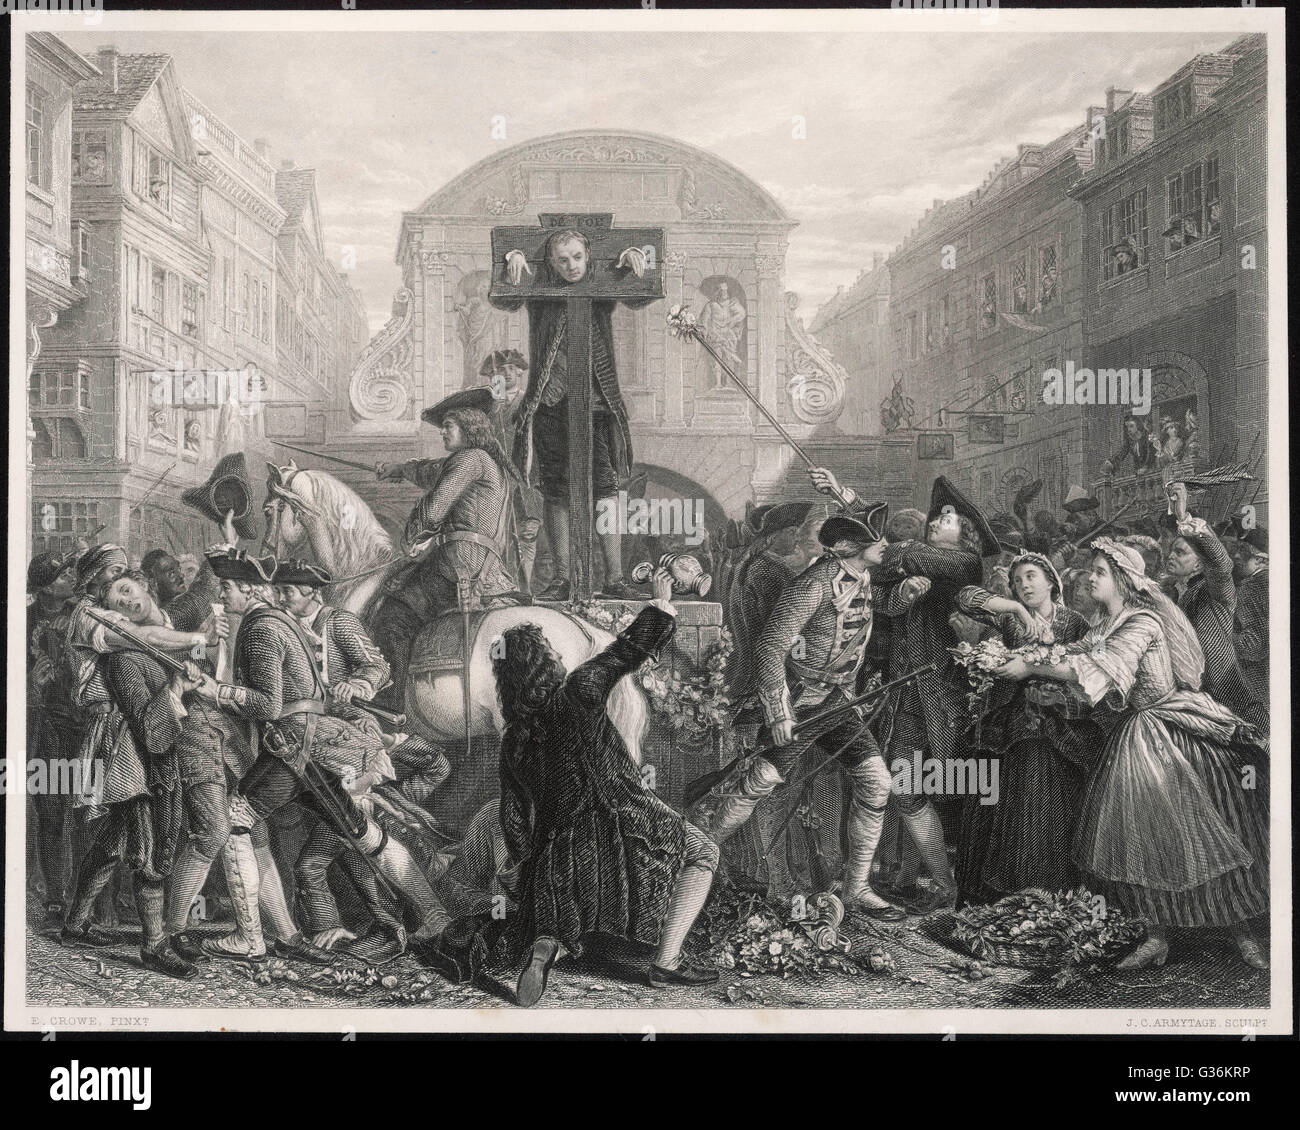 Daniel Defoe (1661-1731) in the pillory, London, 1702, for publishing a  seditious pamphlet Date: 1702